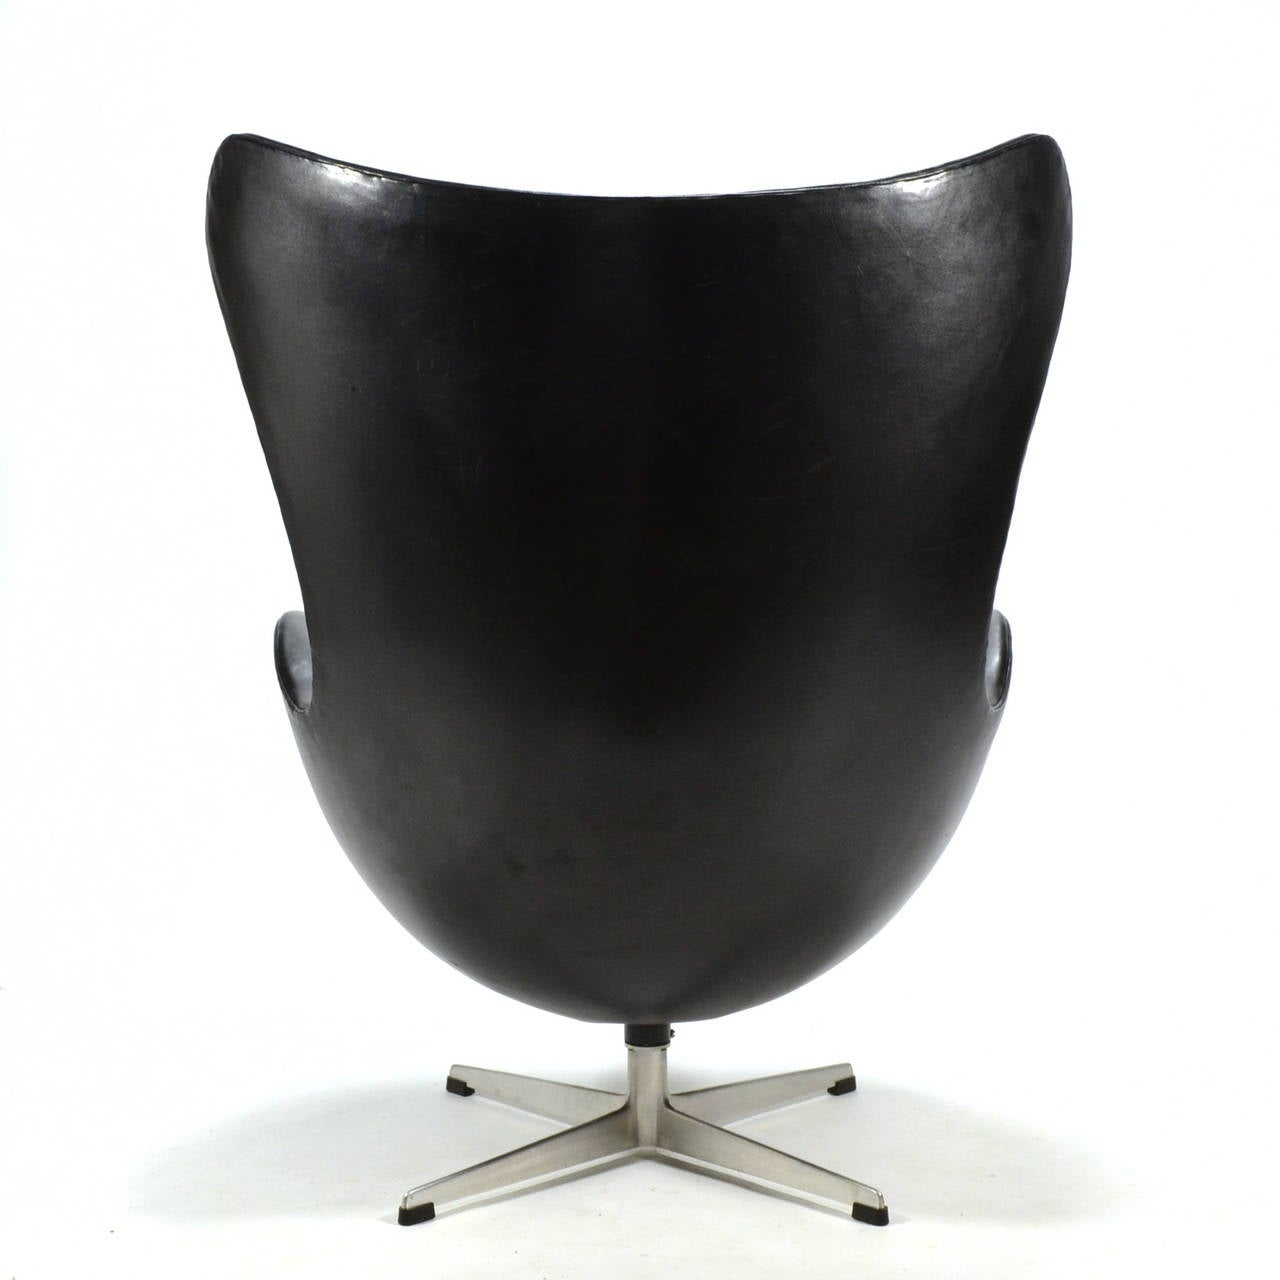 Aluminum Arne Jacobsen Early Egg Chair in Original Black Leather For Sale